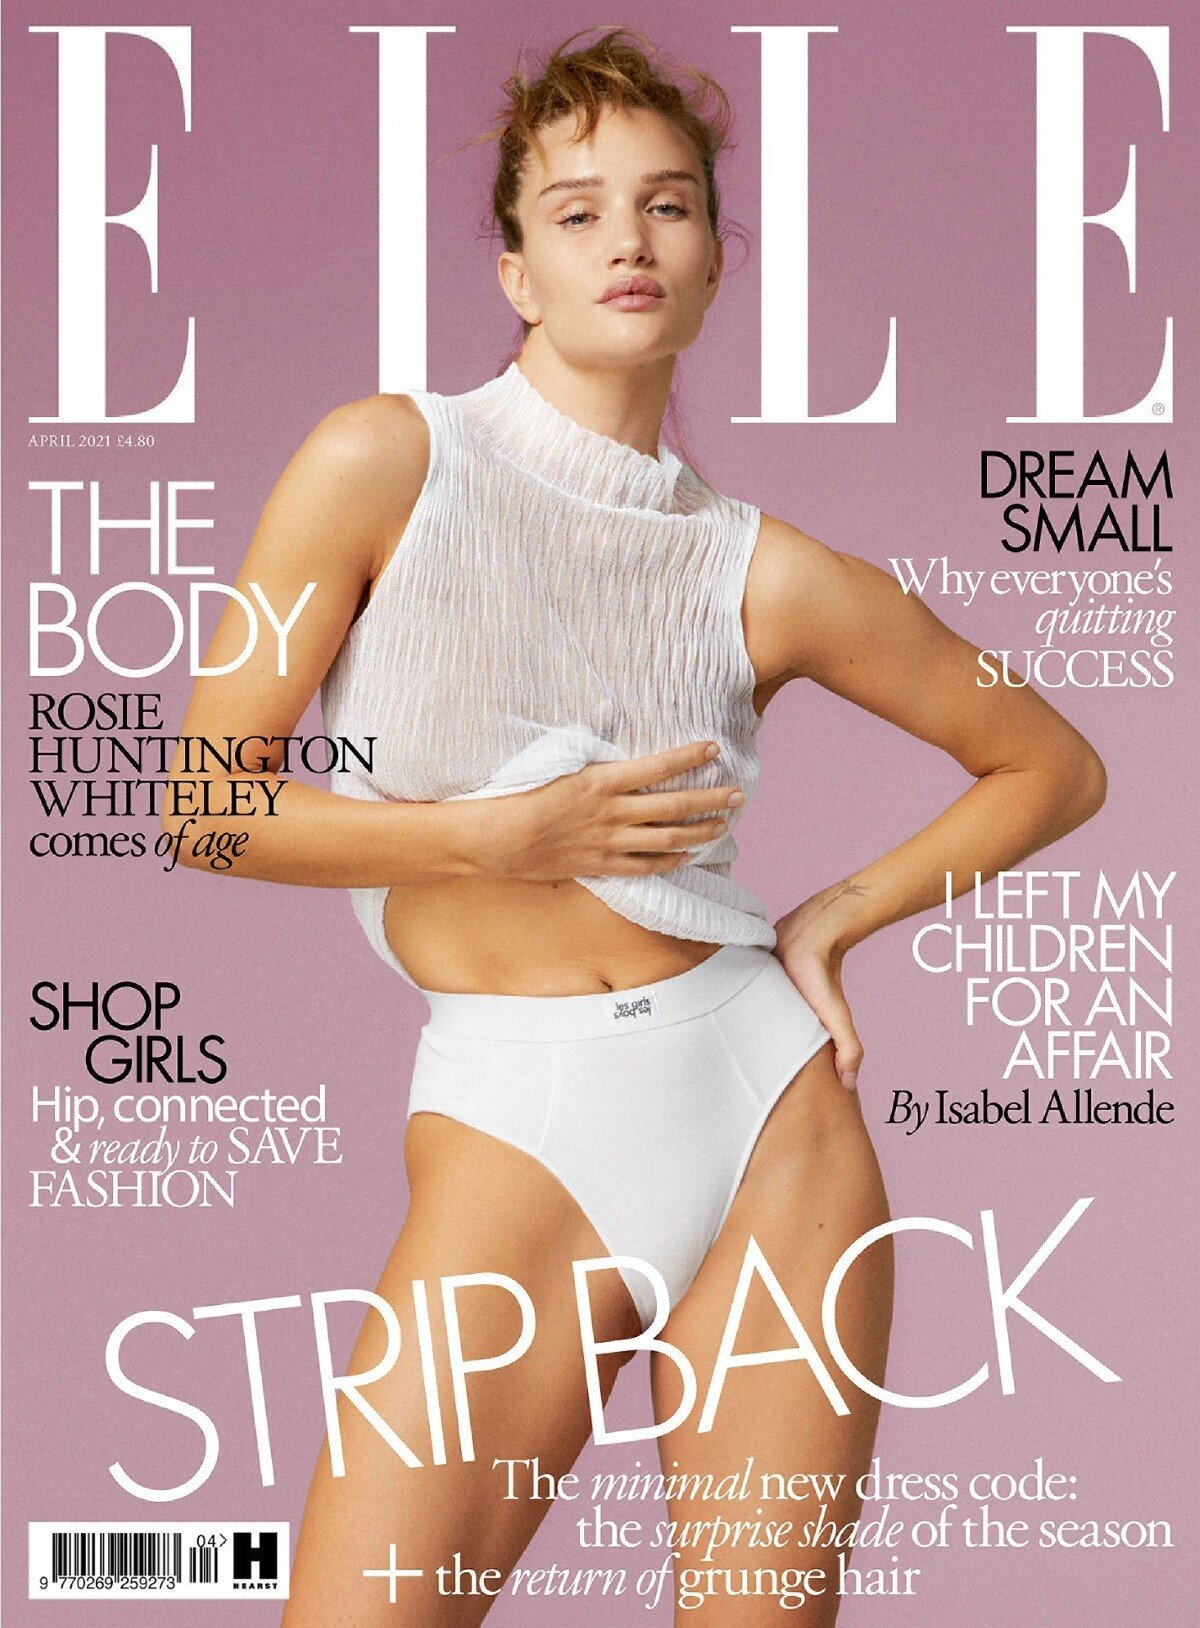 Rosie Huntington-Whiteley covers the April 2021 issue of British ELLE. Photographed by Quentin Jones.